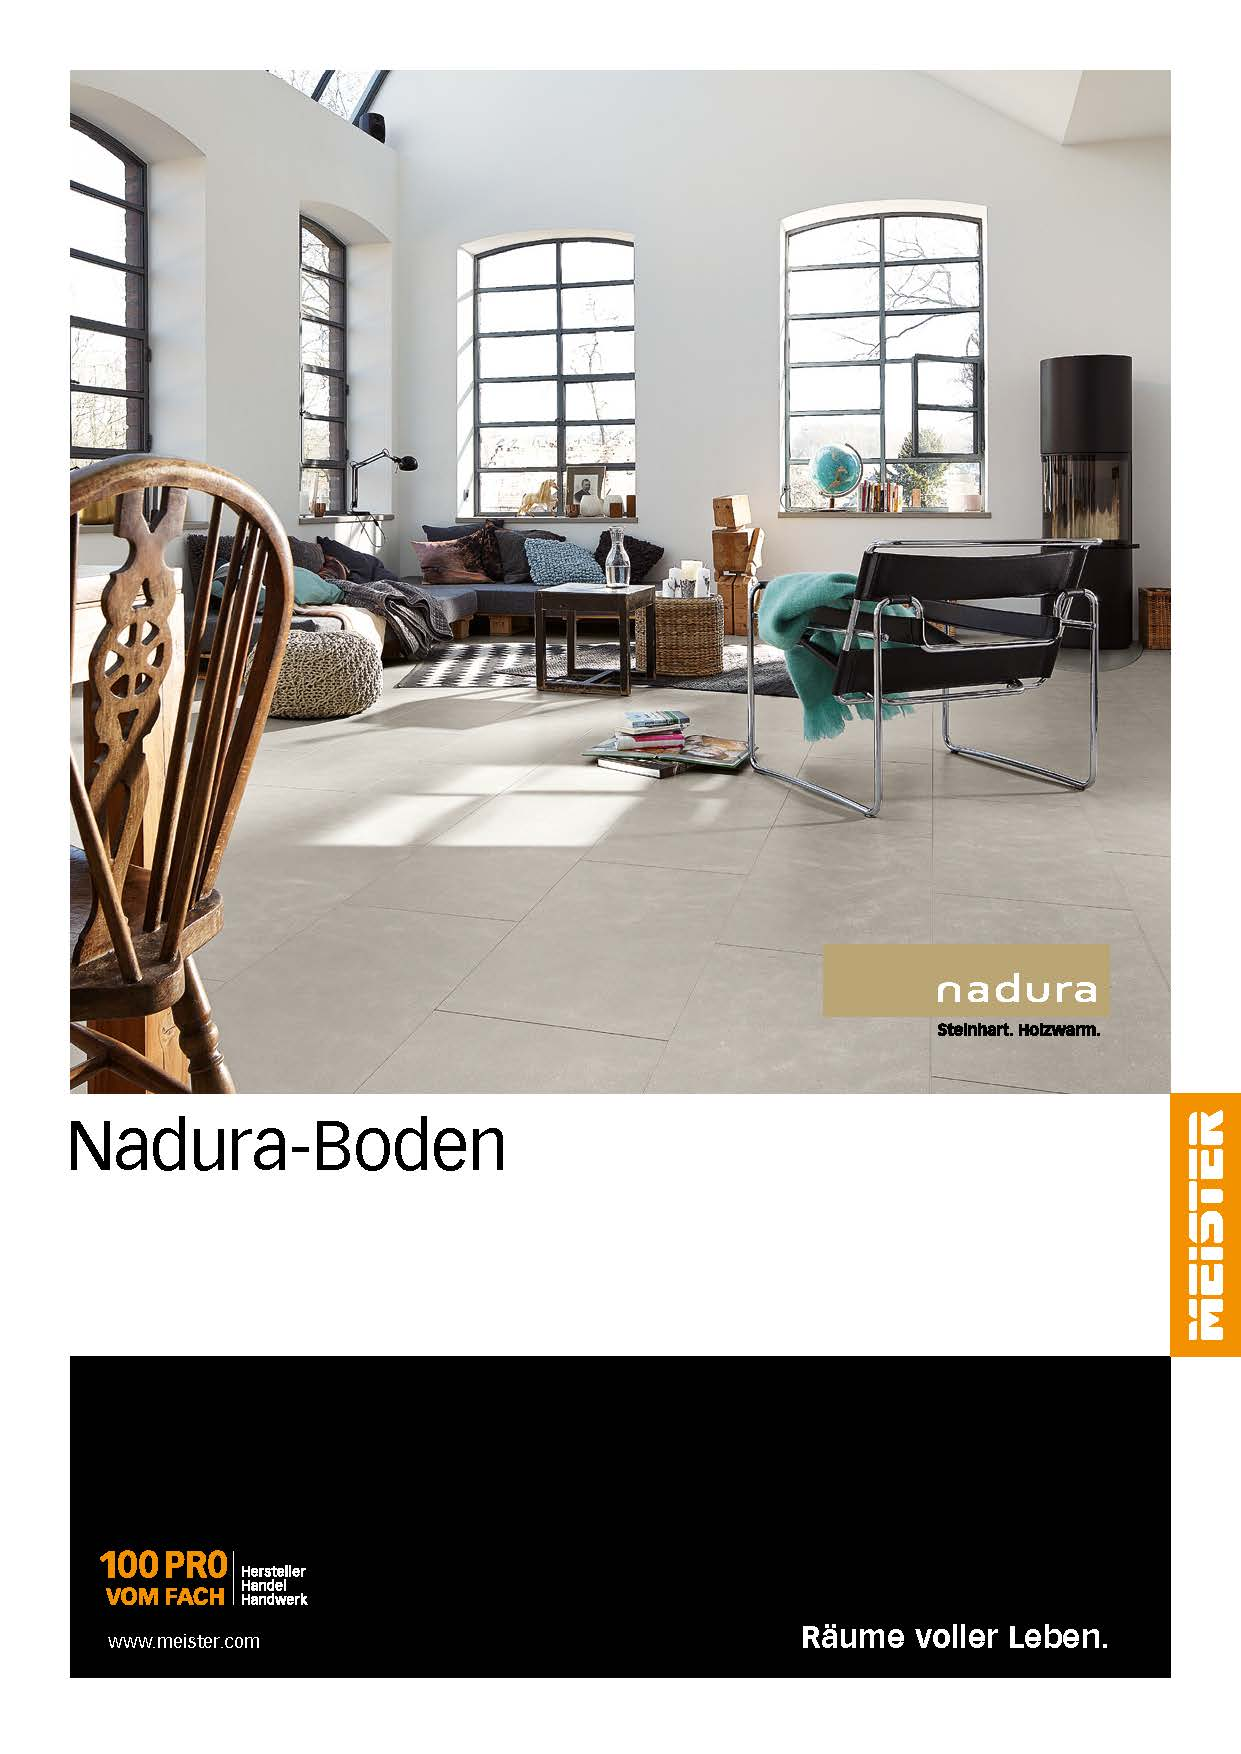 laminat boden terrasse garten t ren hohenfurch schongau peiting landsberg kataloge online. Black Bedroom Furniture Sets. Home Design Ideas